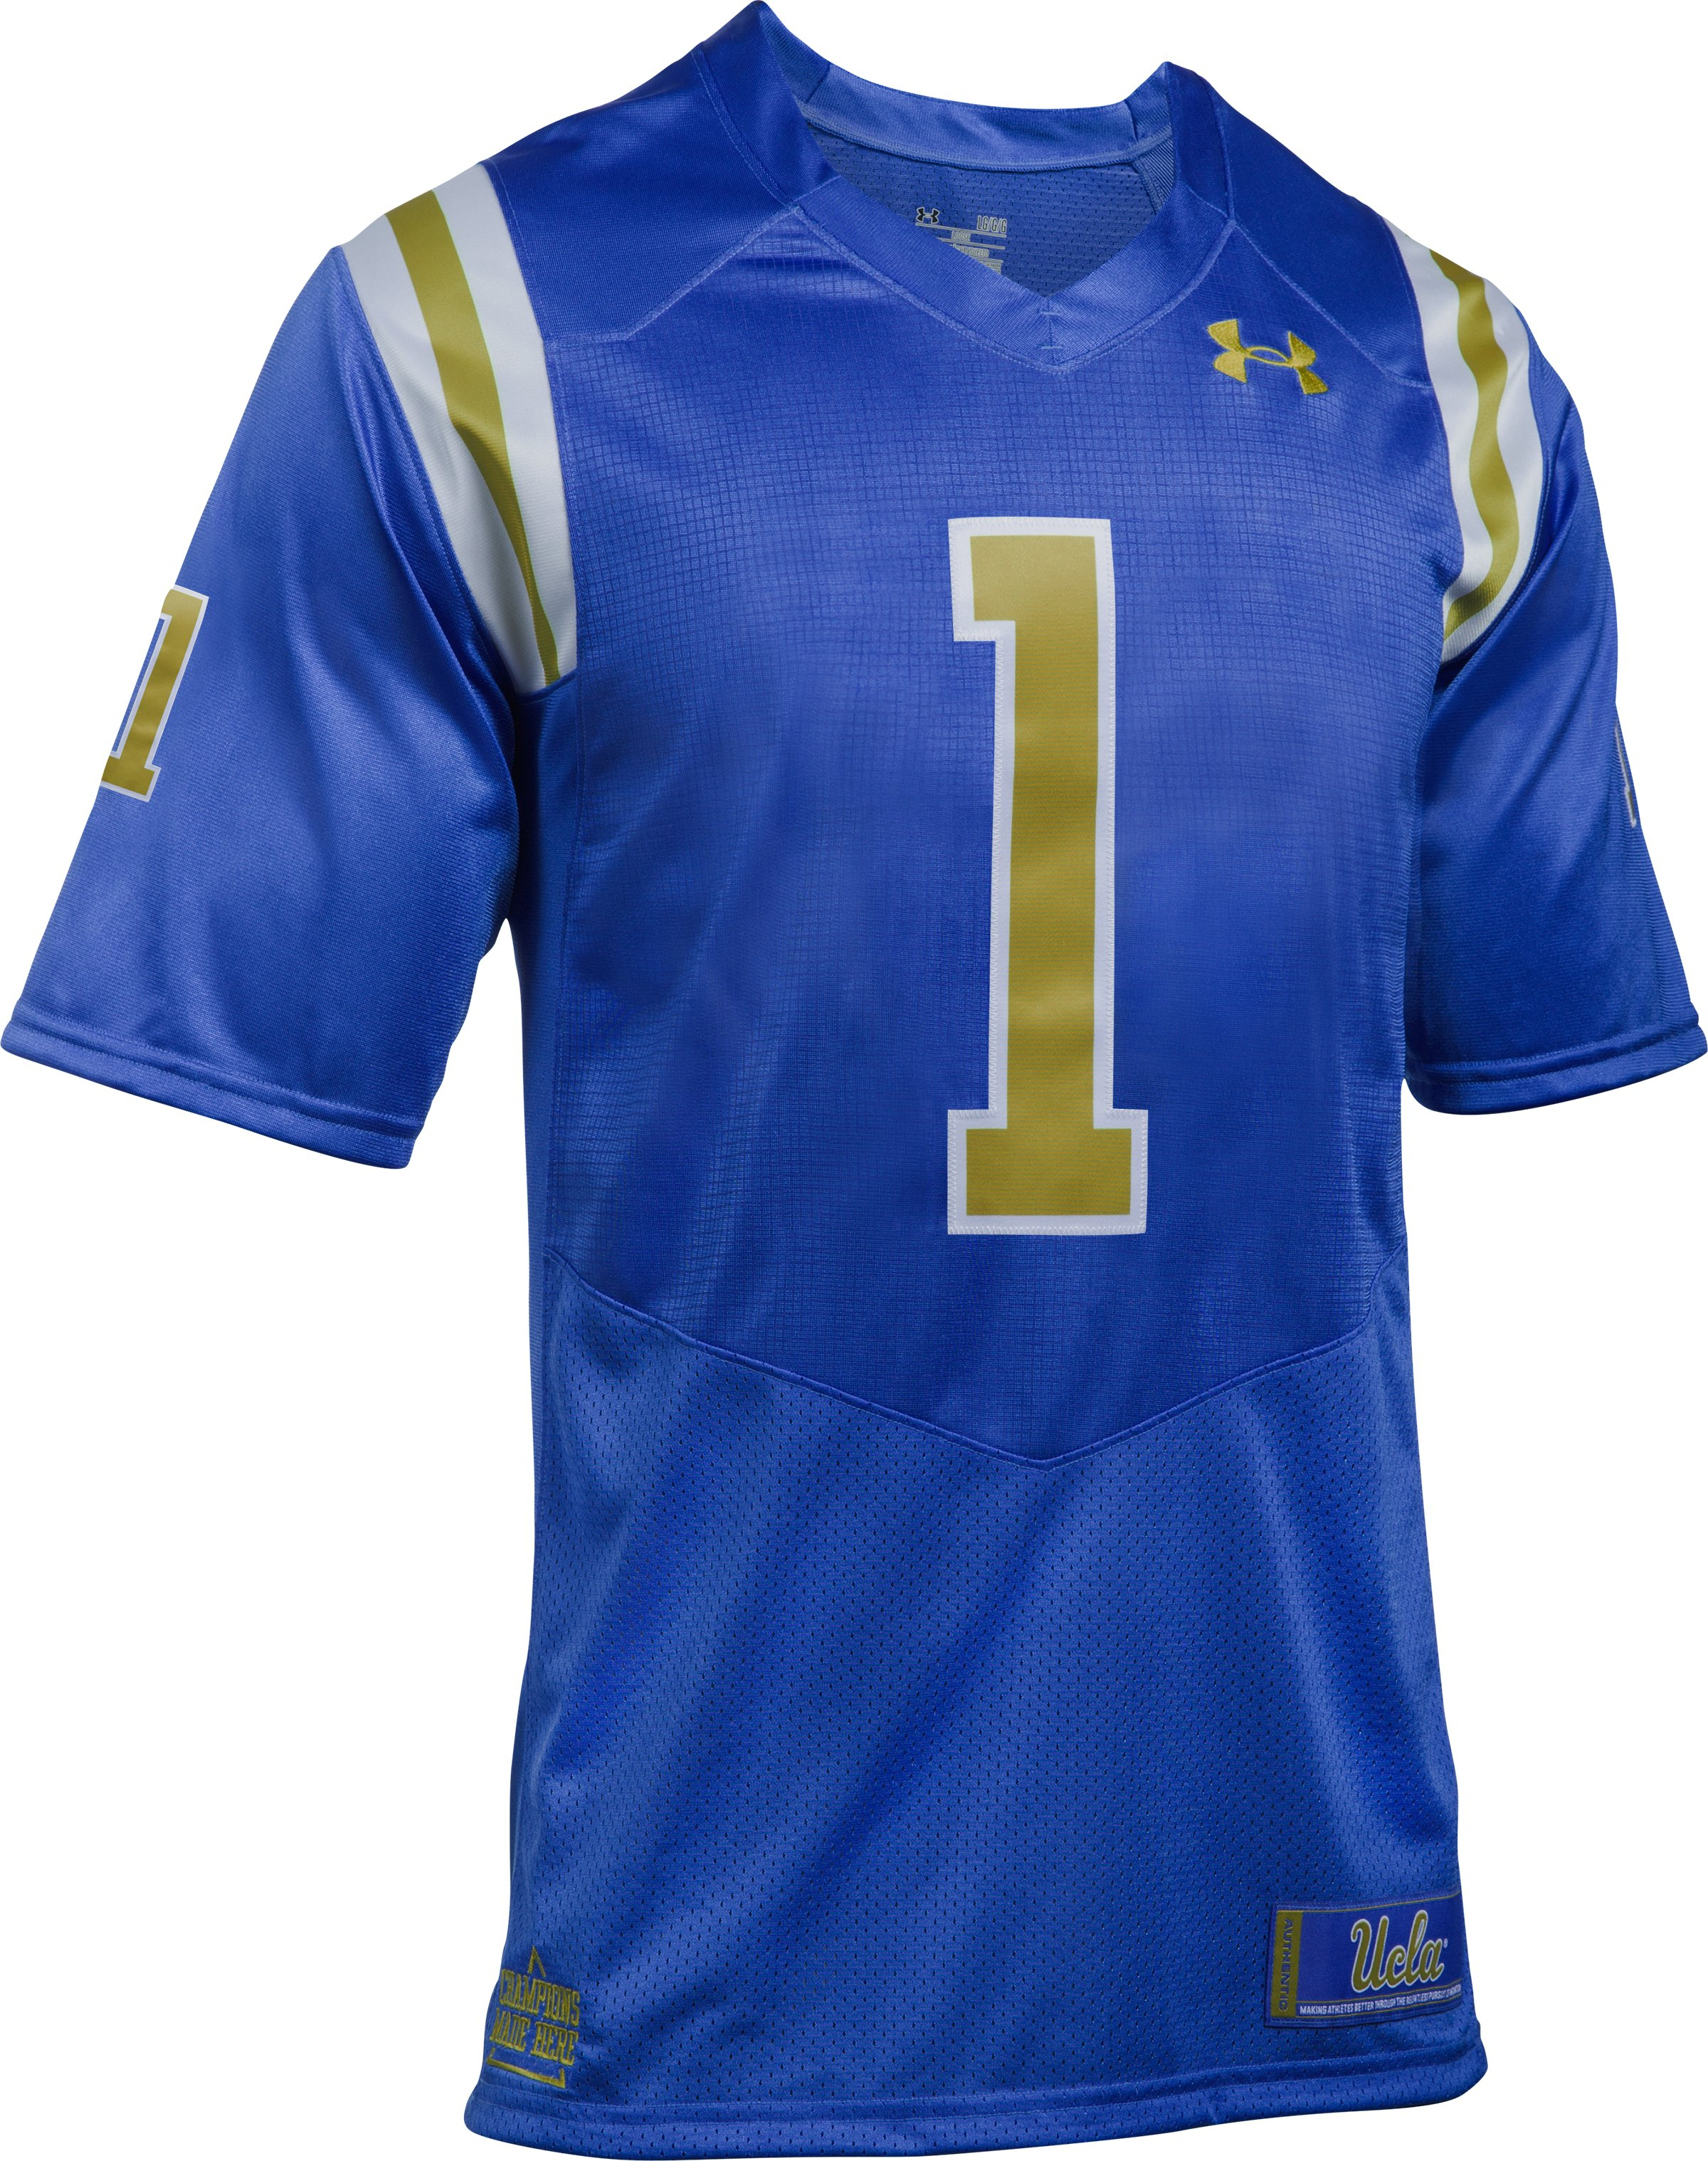 Men's UCLA Replica Home Jersey, POWDERKEG BLUE,